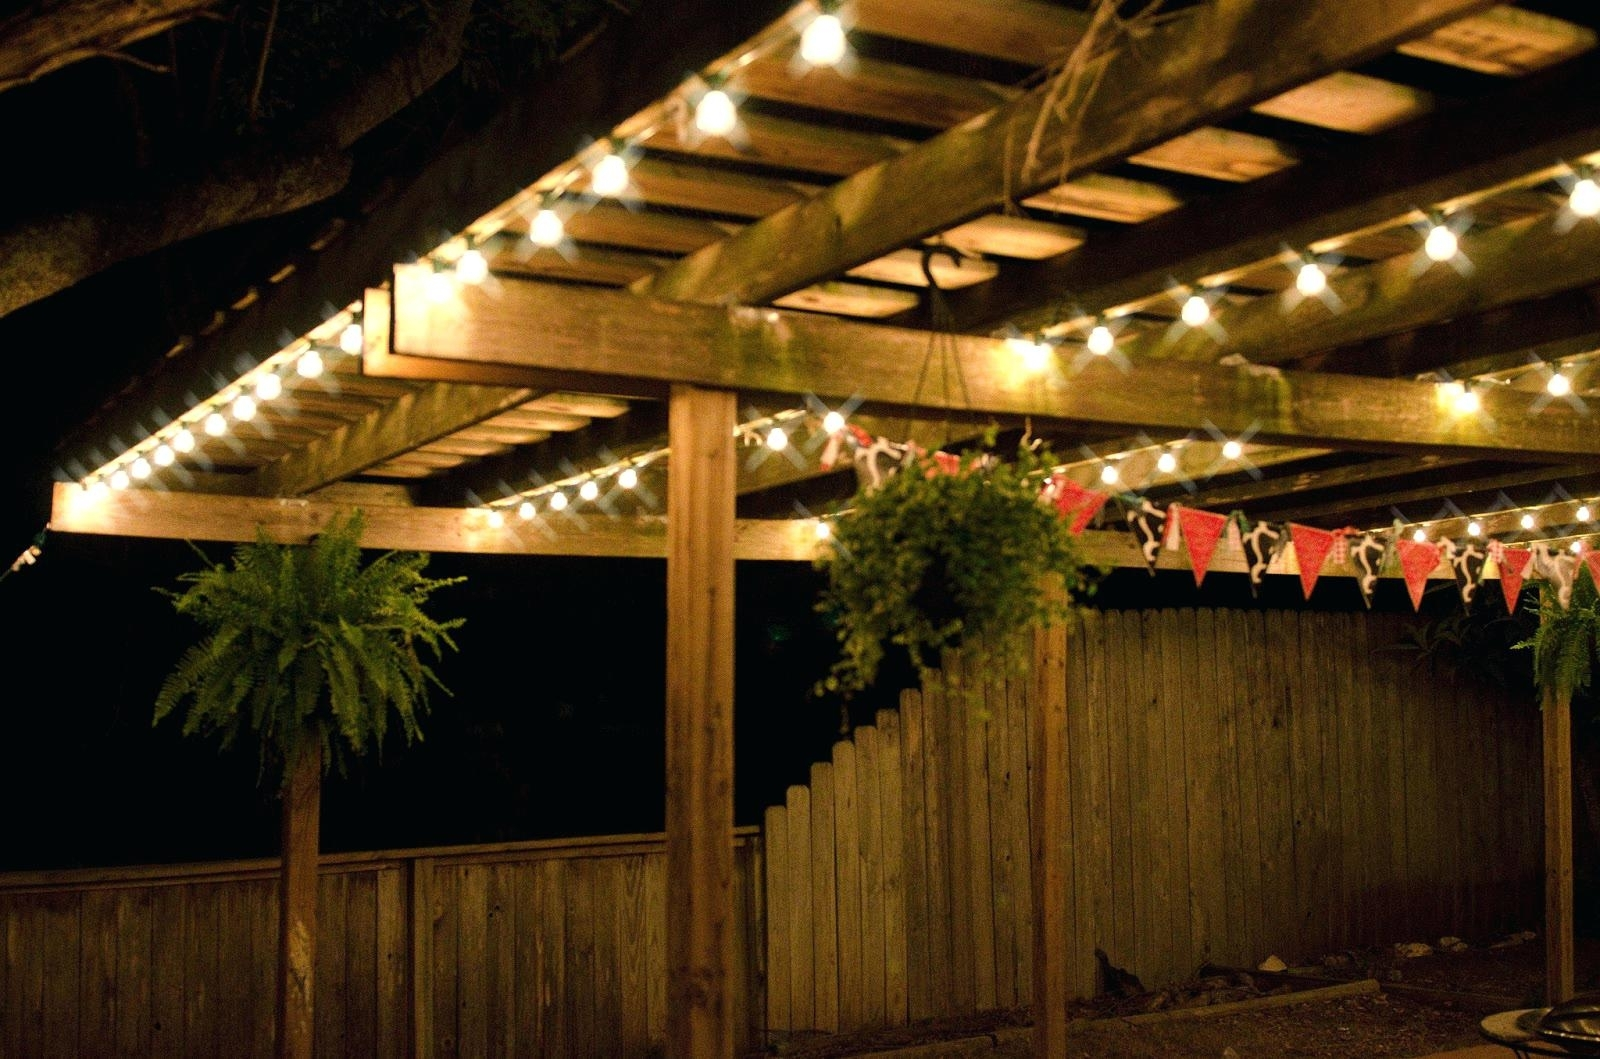 Inspiration about Diy : Target Threshold Outdoor String Lights Heavy Duty Amazon Globe Within Hanging Outdoor String Lights At Target (#2 of 15)